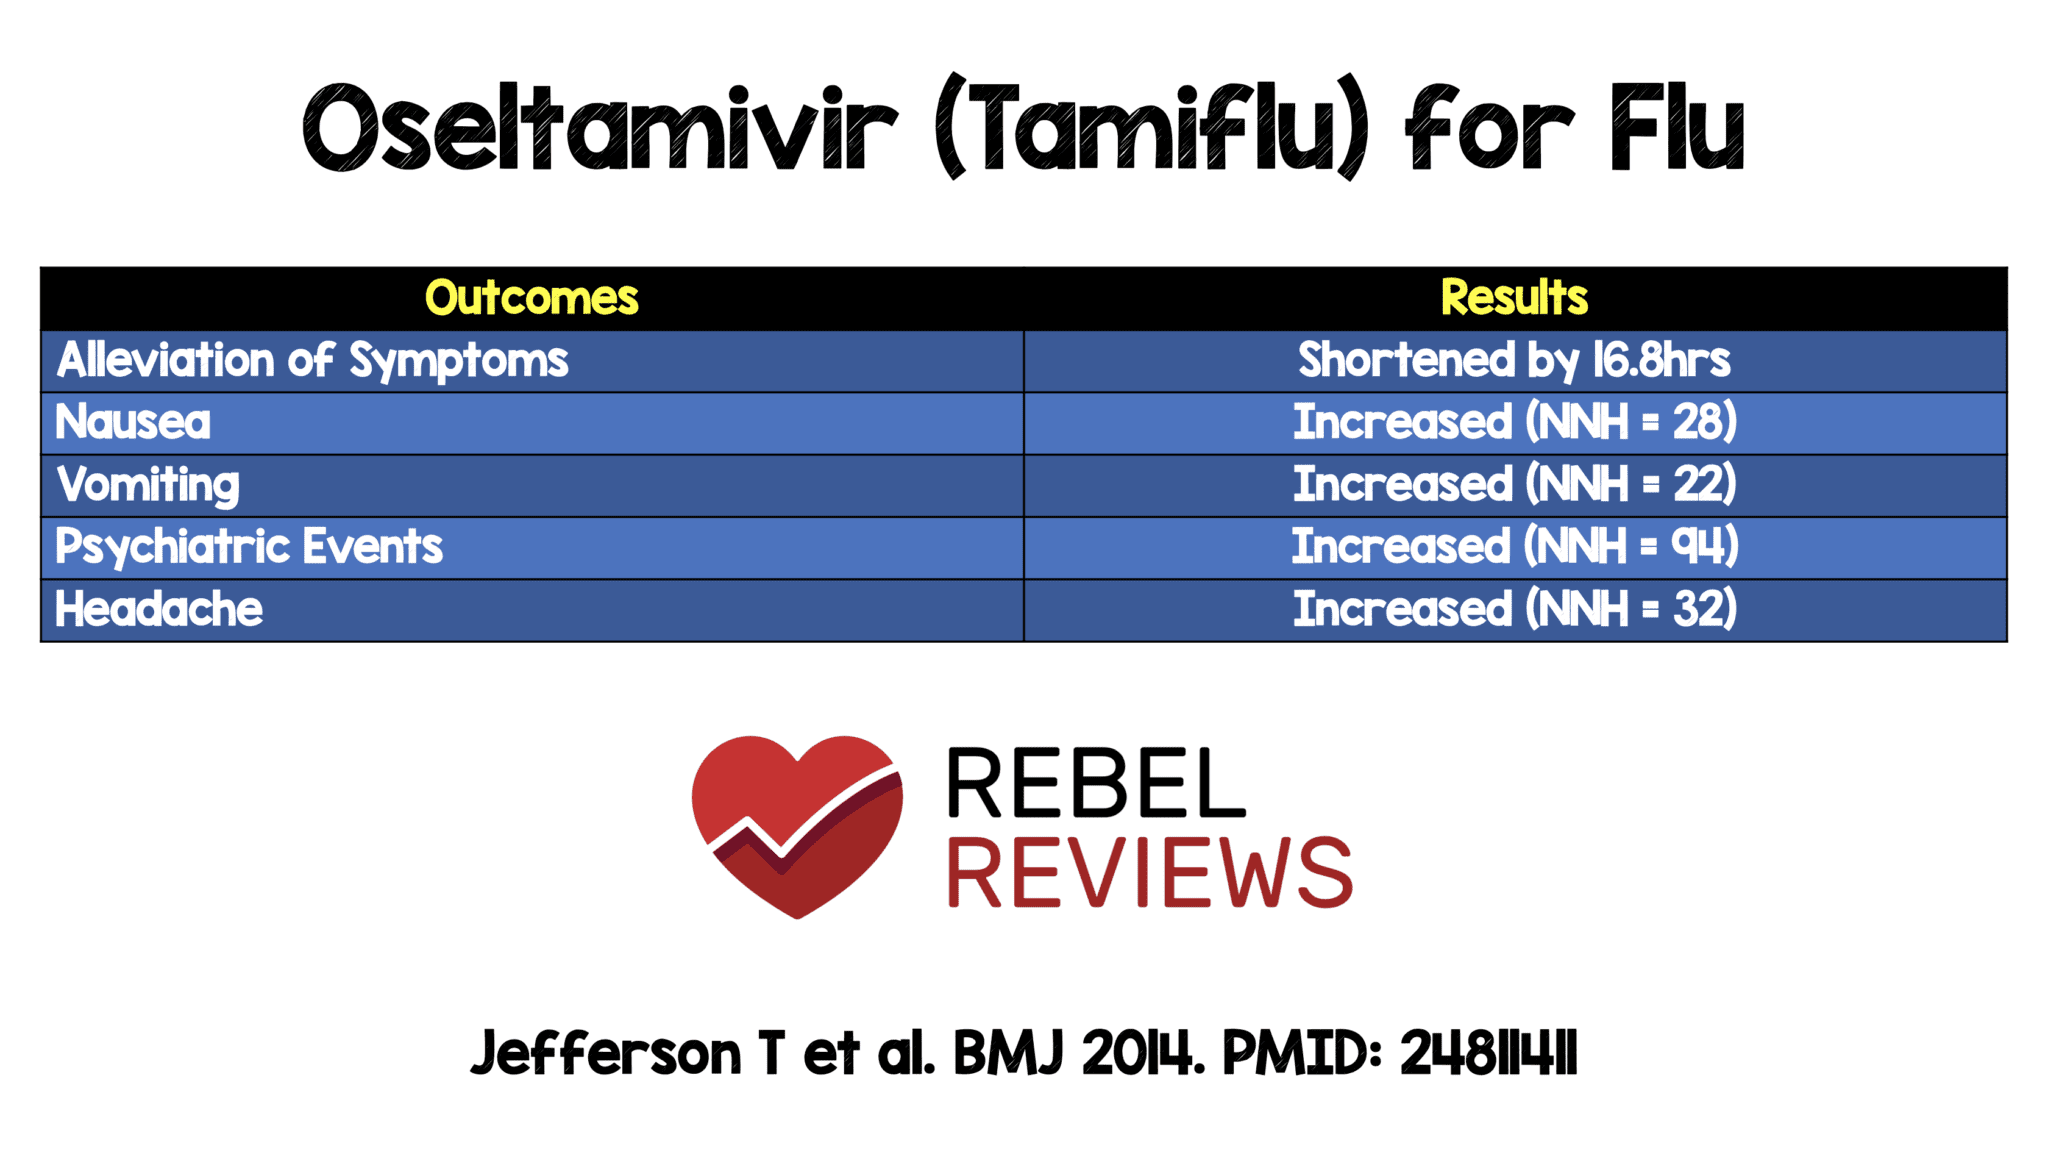 Oseltamivir (Tamiflu) for Treatment of Influenza - REBEL EM ...